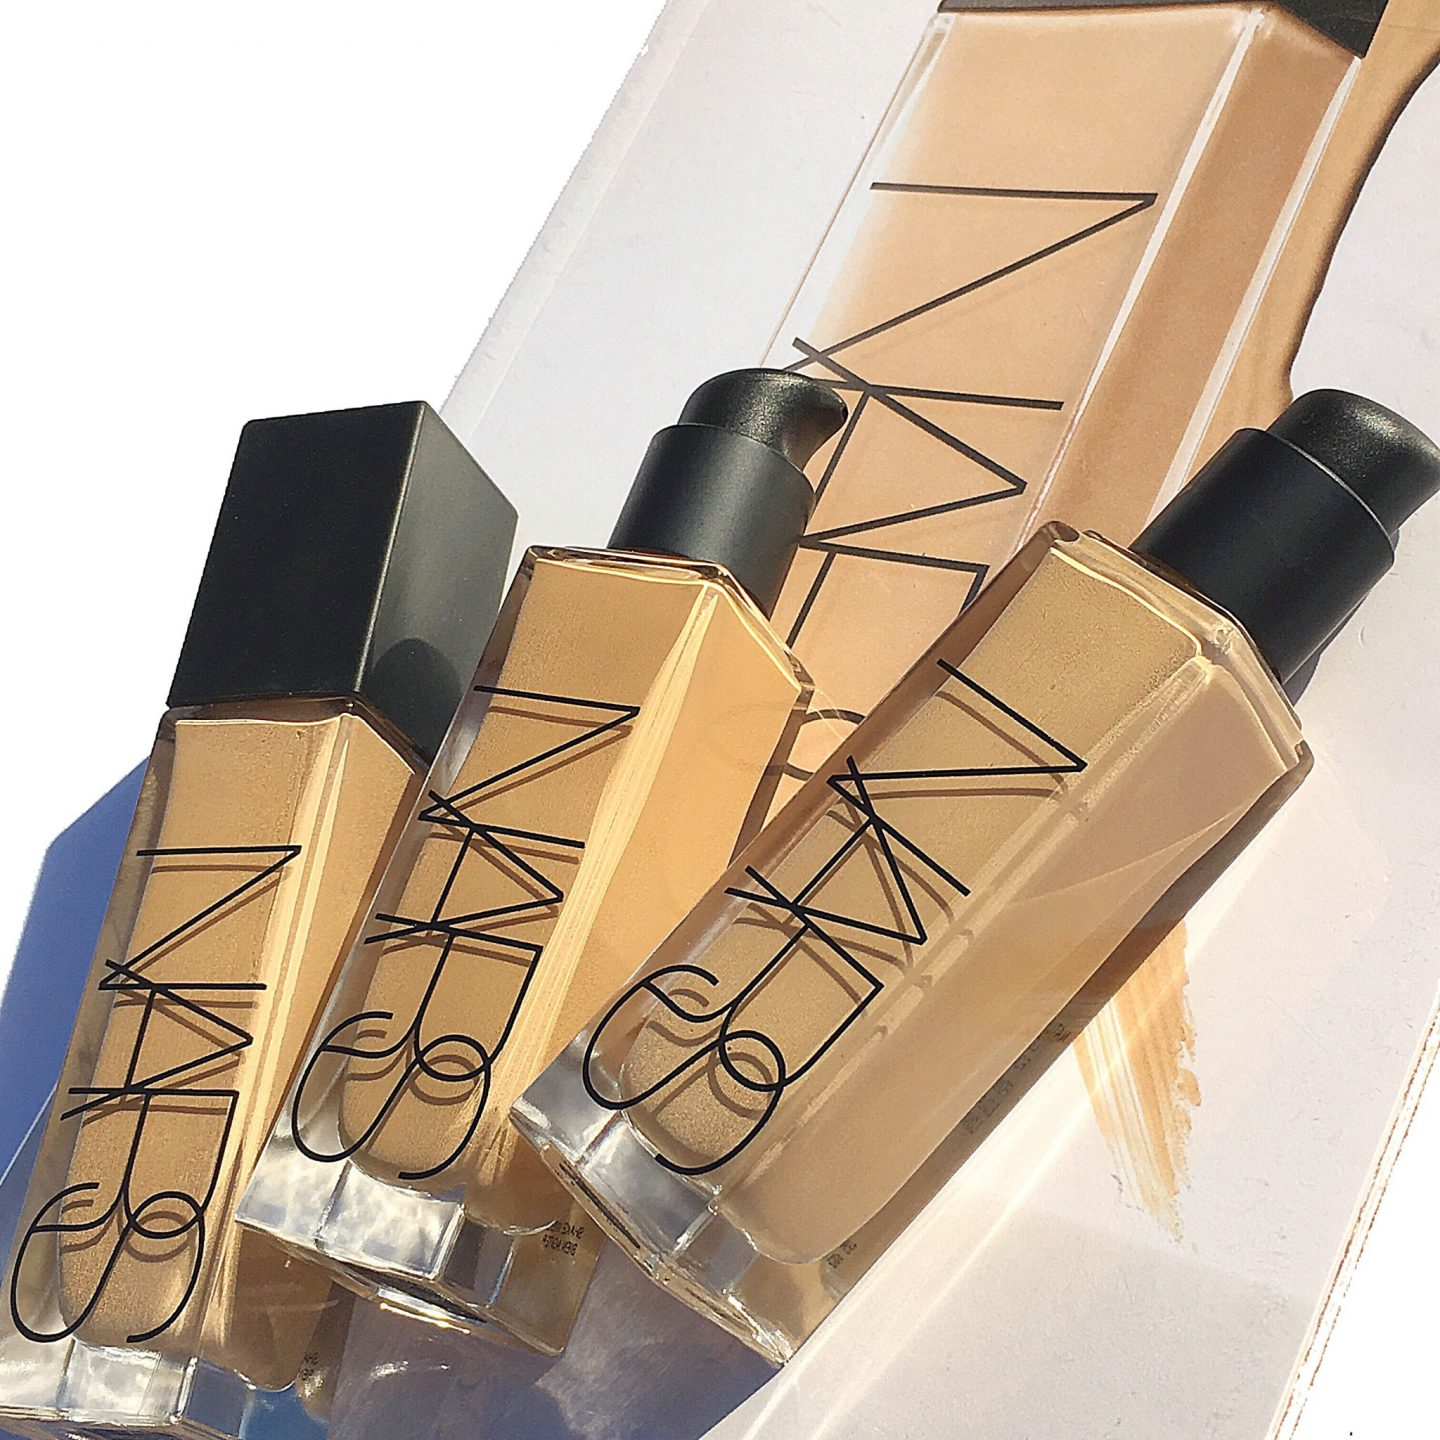 NARS Natural Radiant Longwear Foundation Review & Swatches All Shades